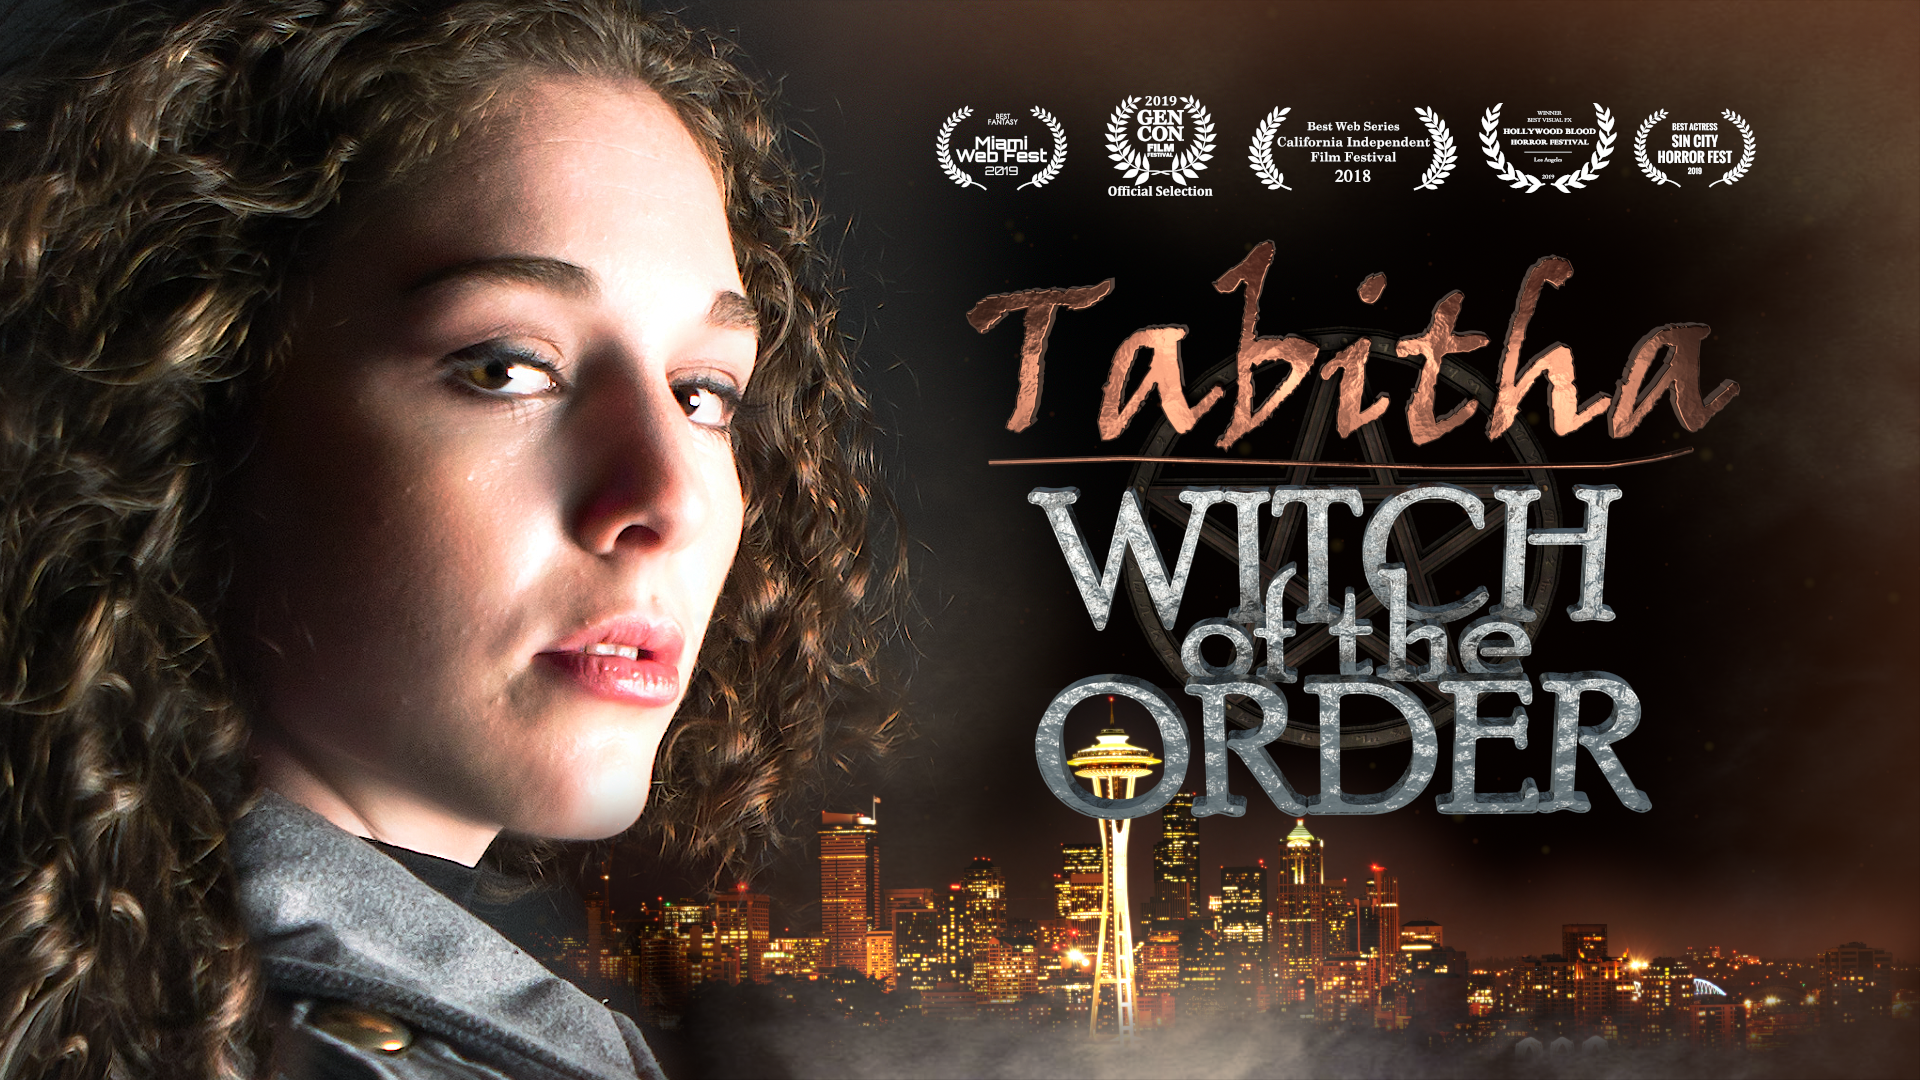 Tabitha Witch of the Order